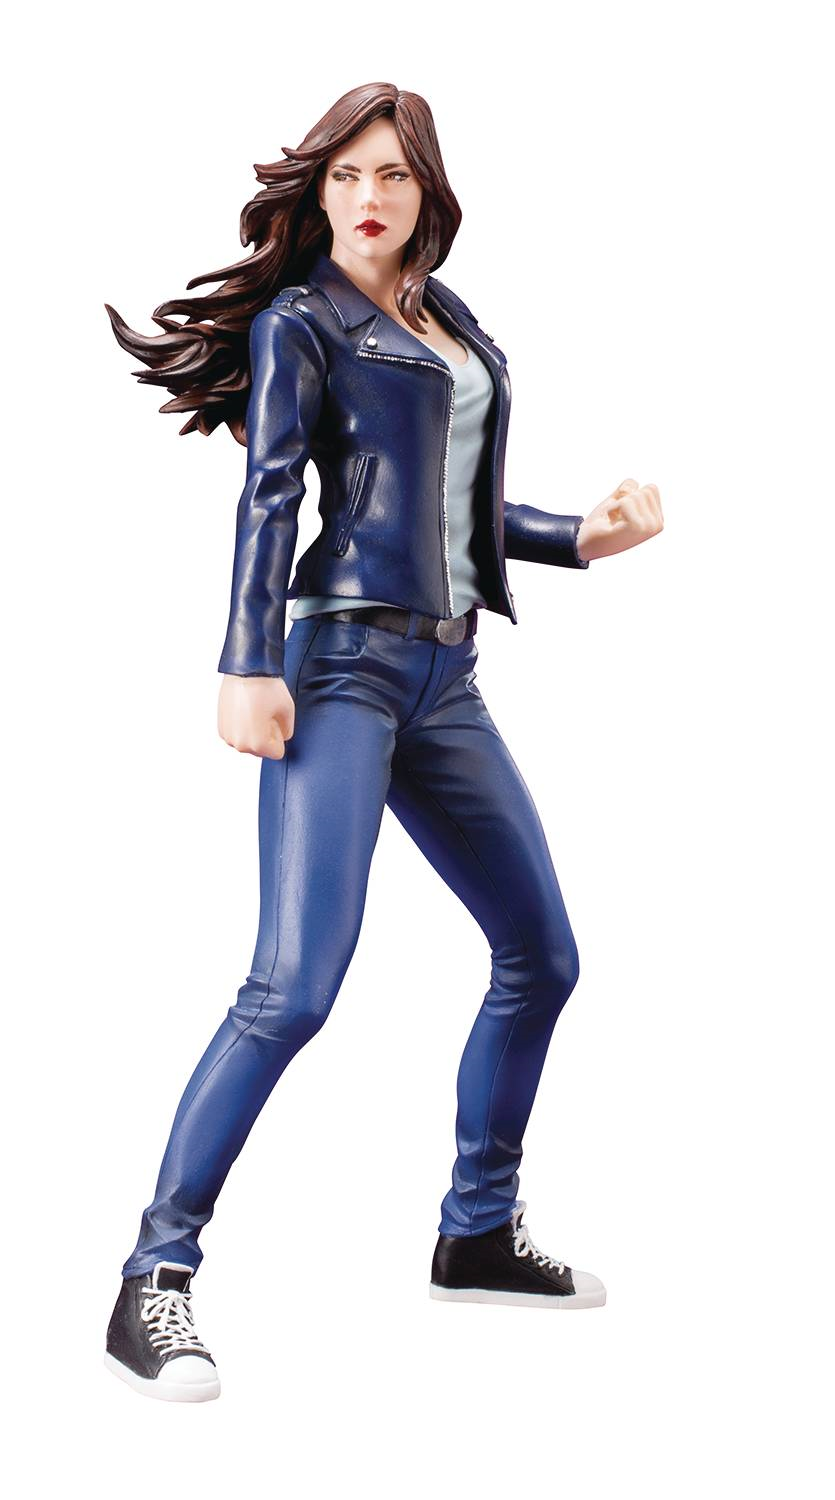 Marvel Defenders Series Jessica Jones Artfx+ Kotobukiya